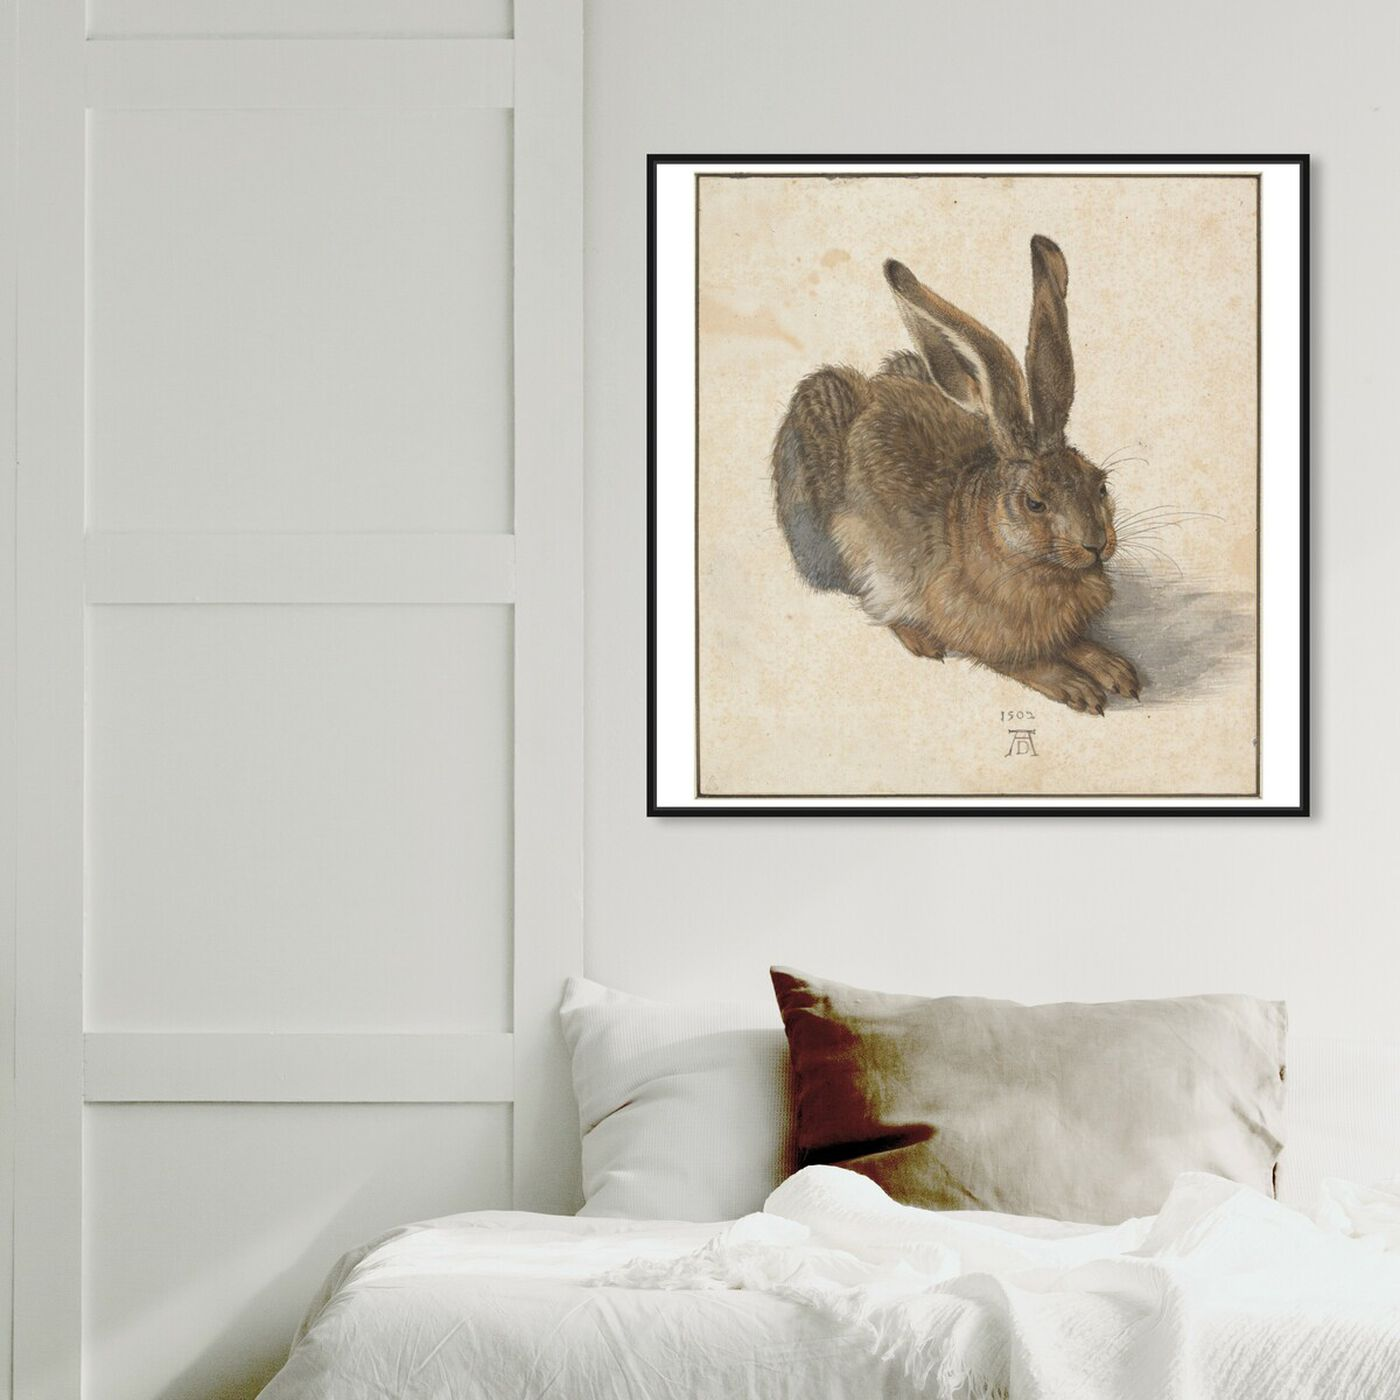 Hanging view of Durer - Hare featuring animals and farm animals art.